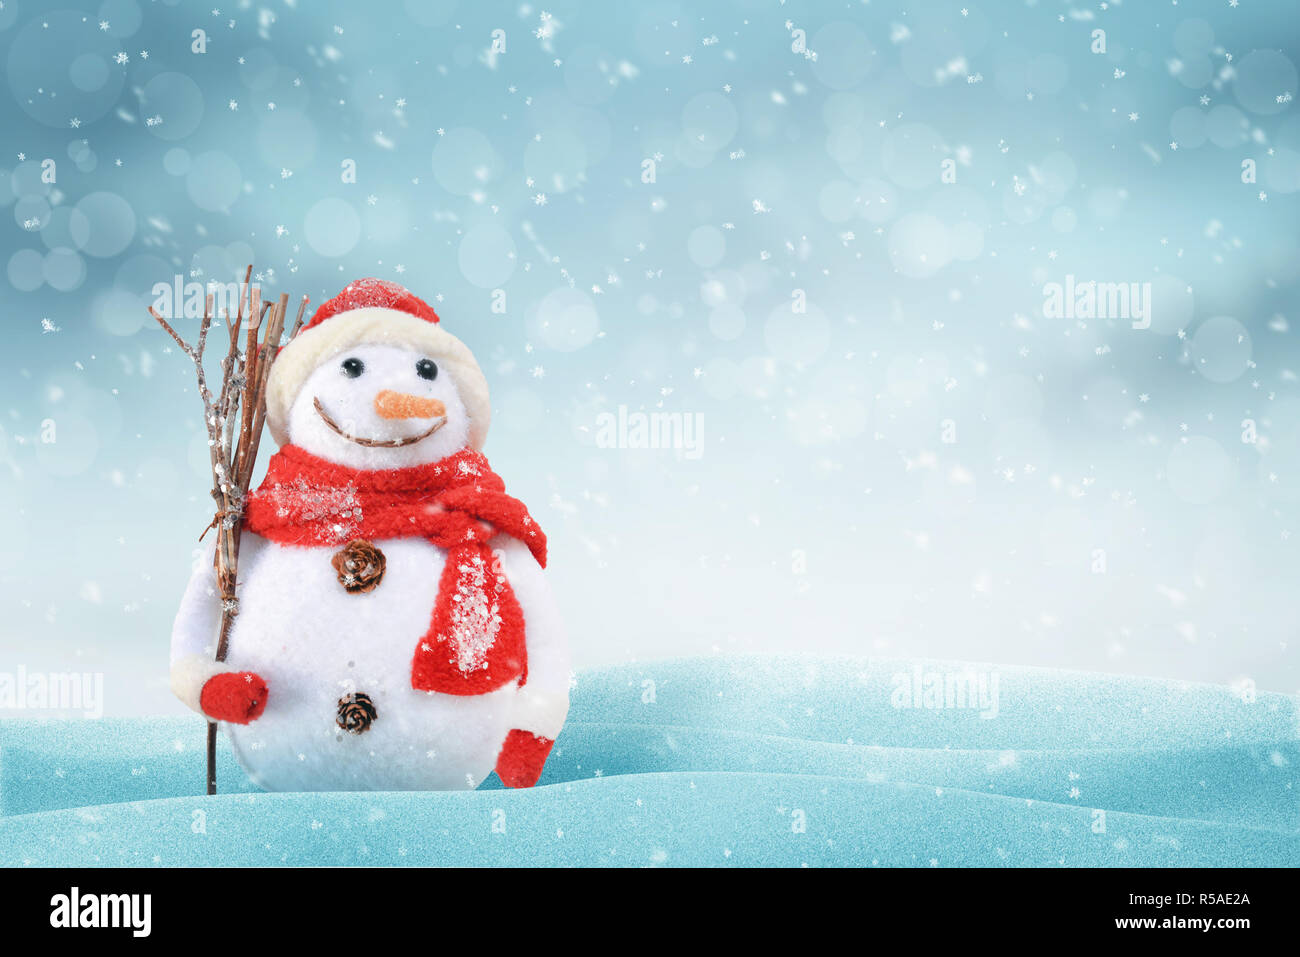 Christmas scene with a cute snowman. Free space for text on right side. snob, light and bokeh in background. - Stock Image